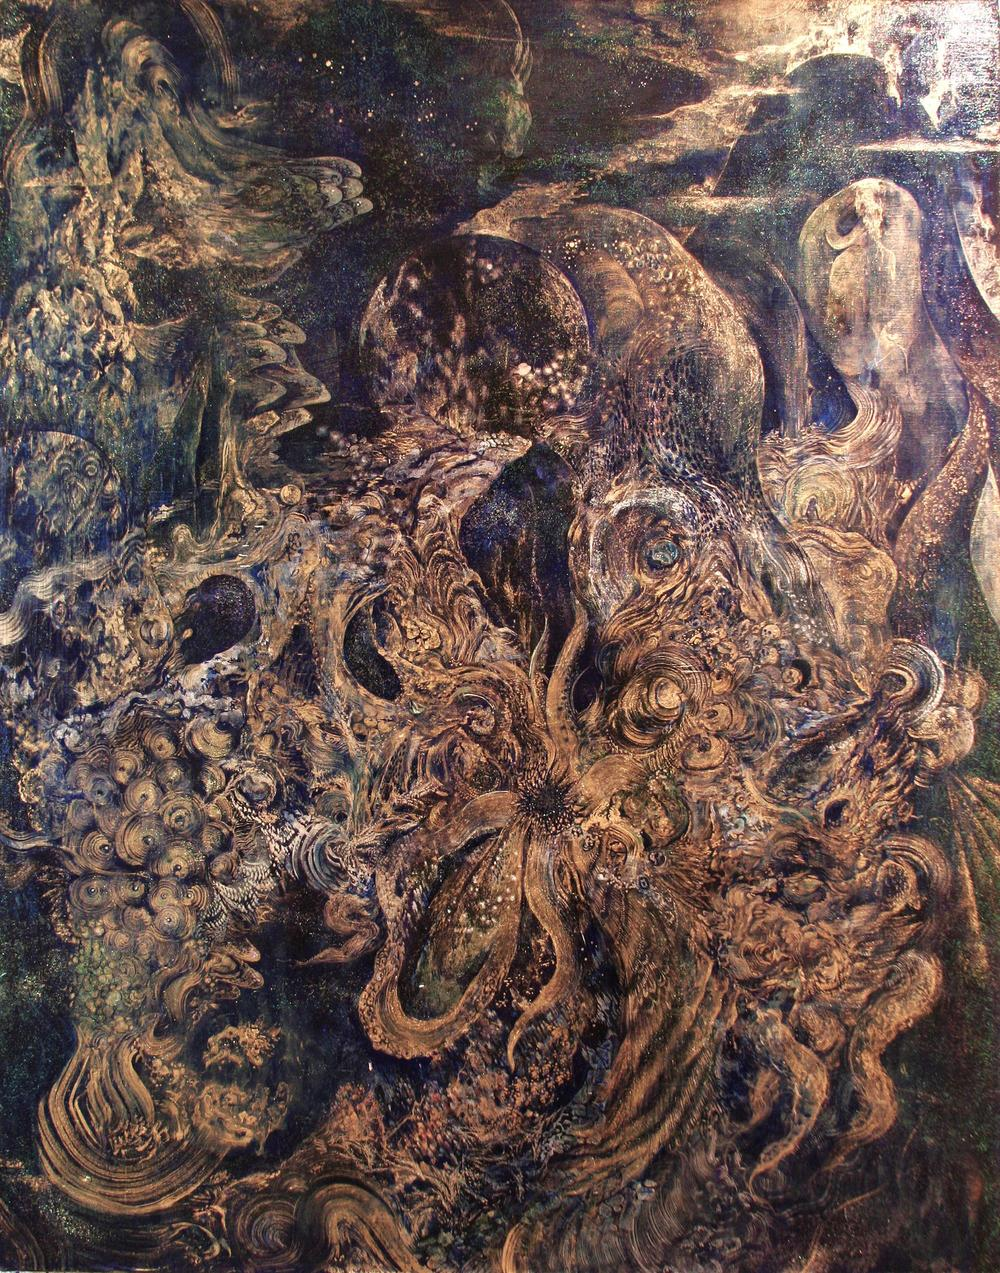 Cephalopod in the deep sea  2014  Acrylic and Metal powder on canvas  W100cm x H80.3cm